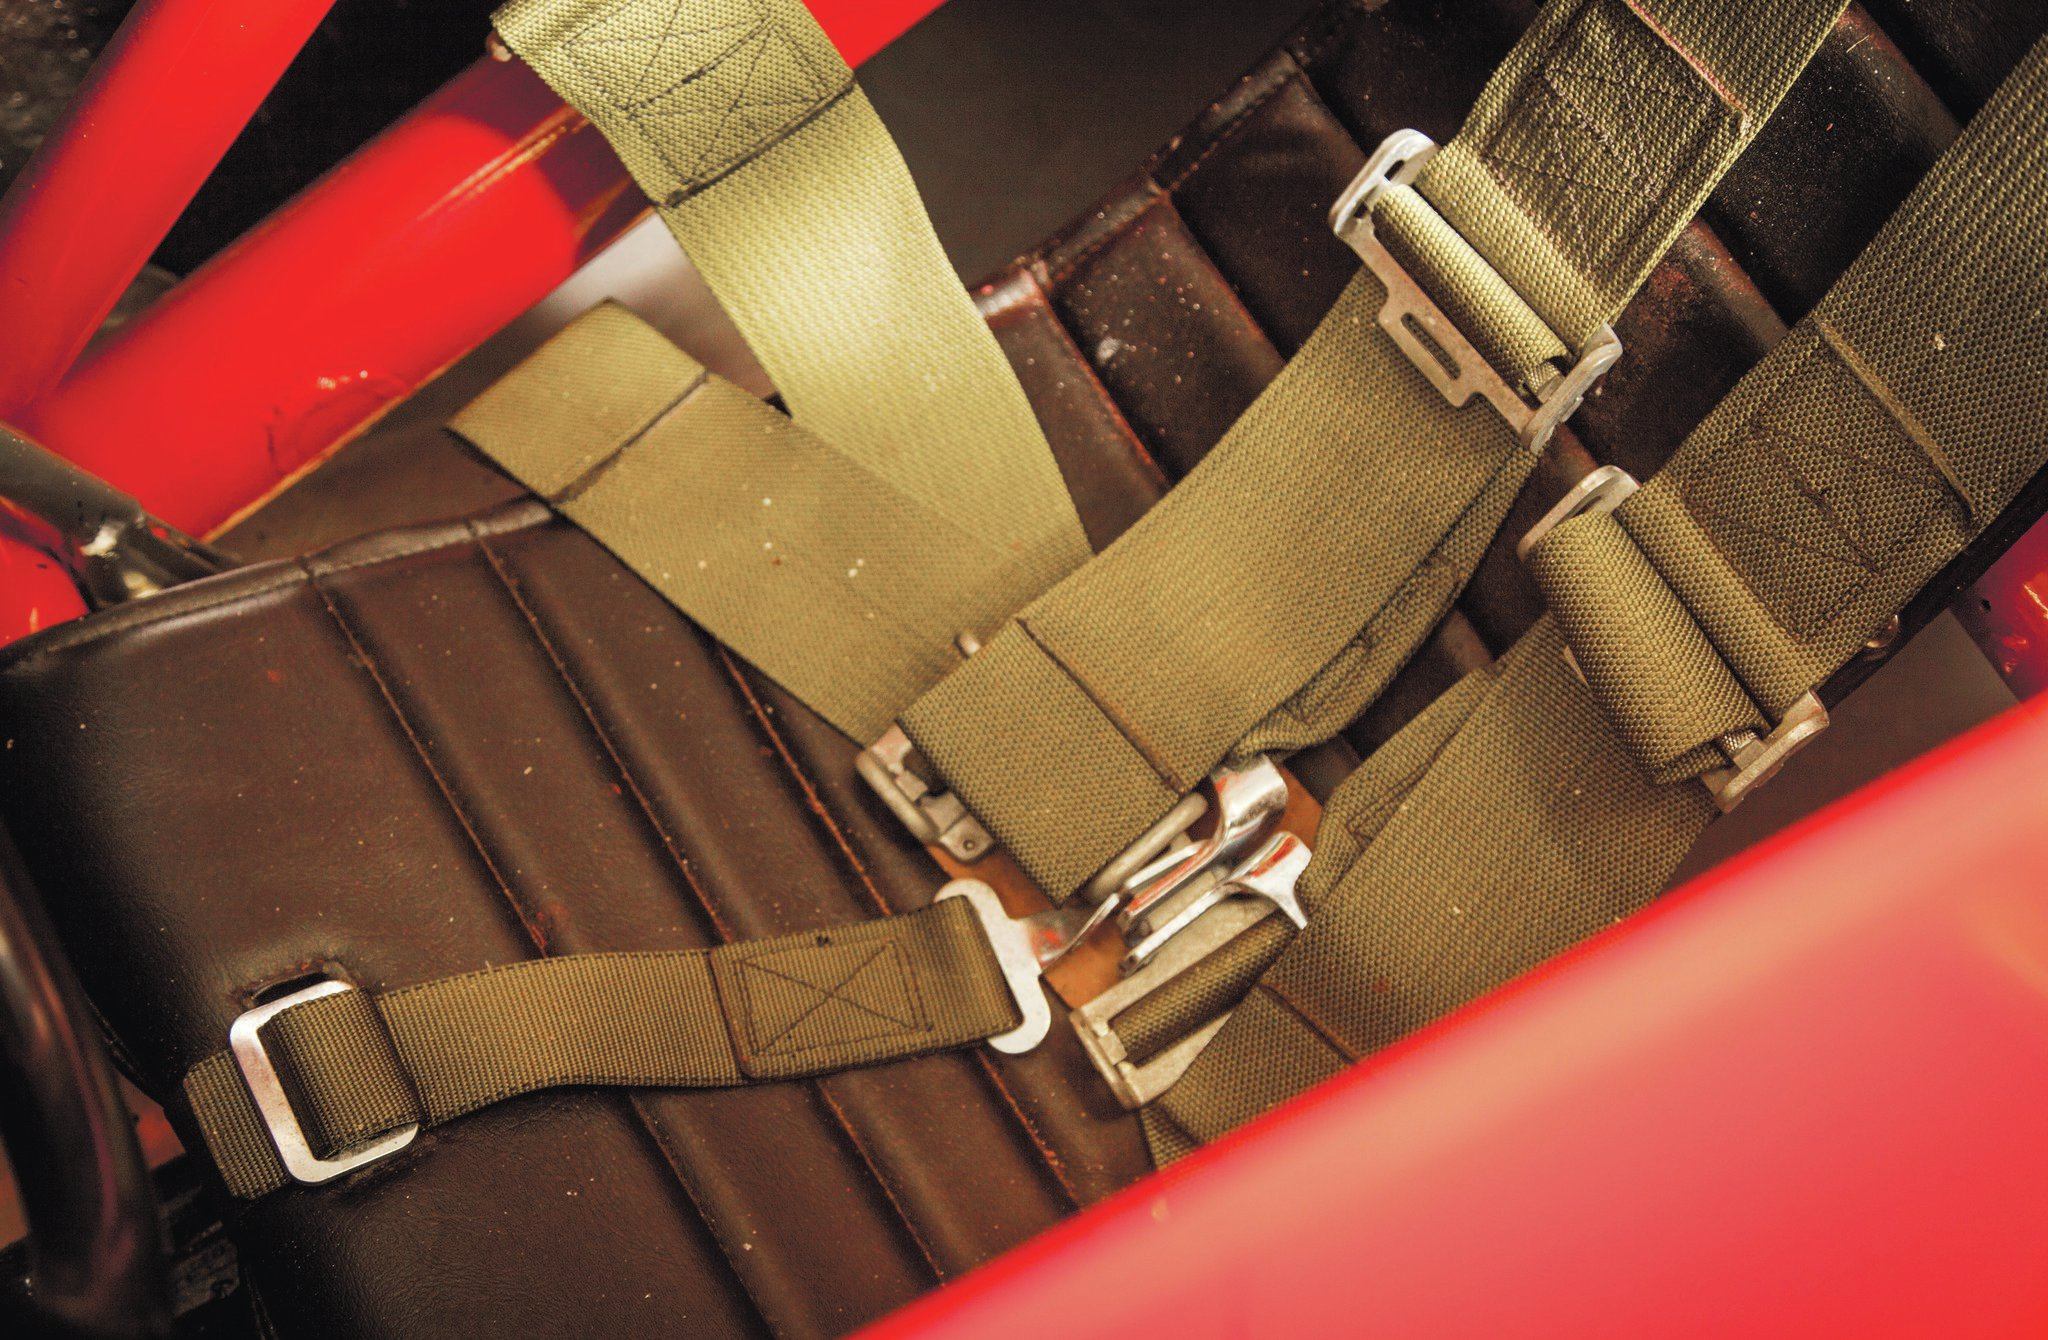 Rick White stitched up the cover for the metal seat and also supplied the belts.